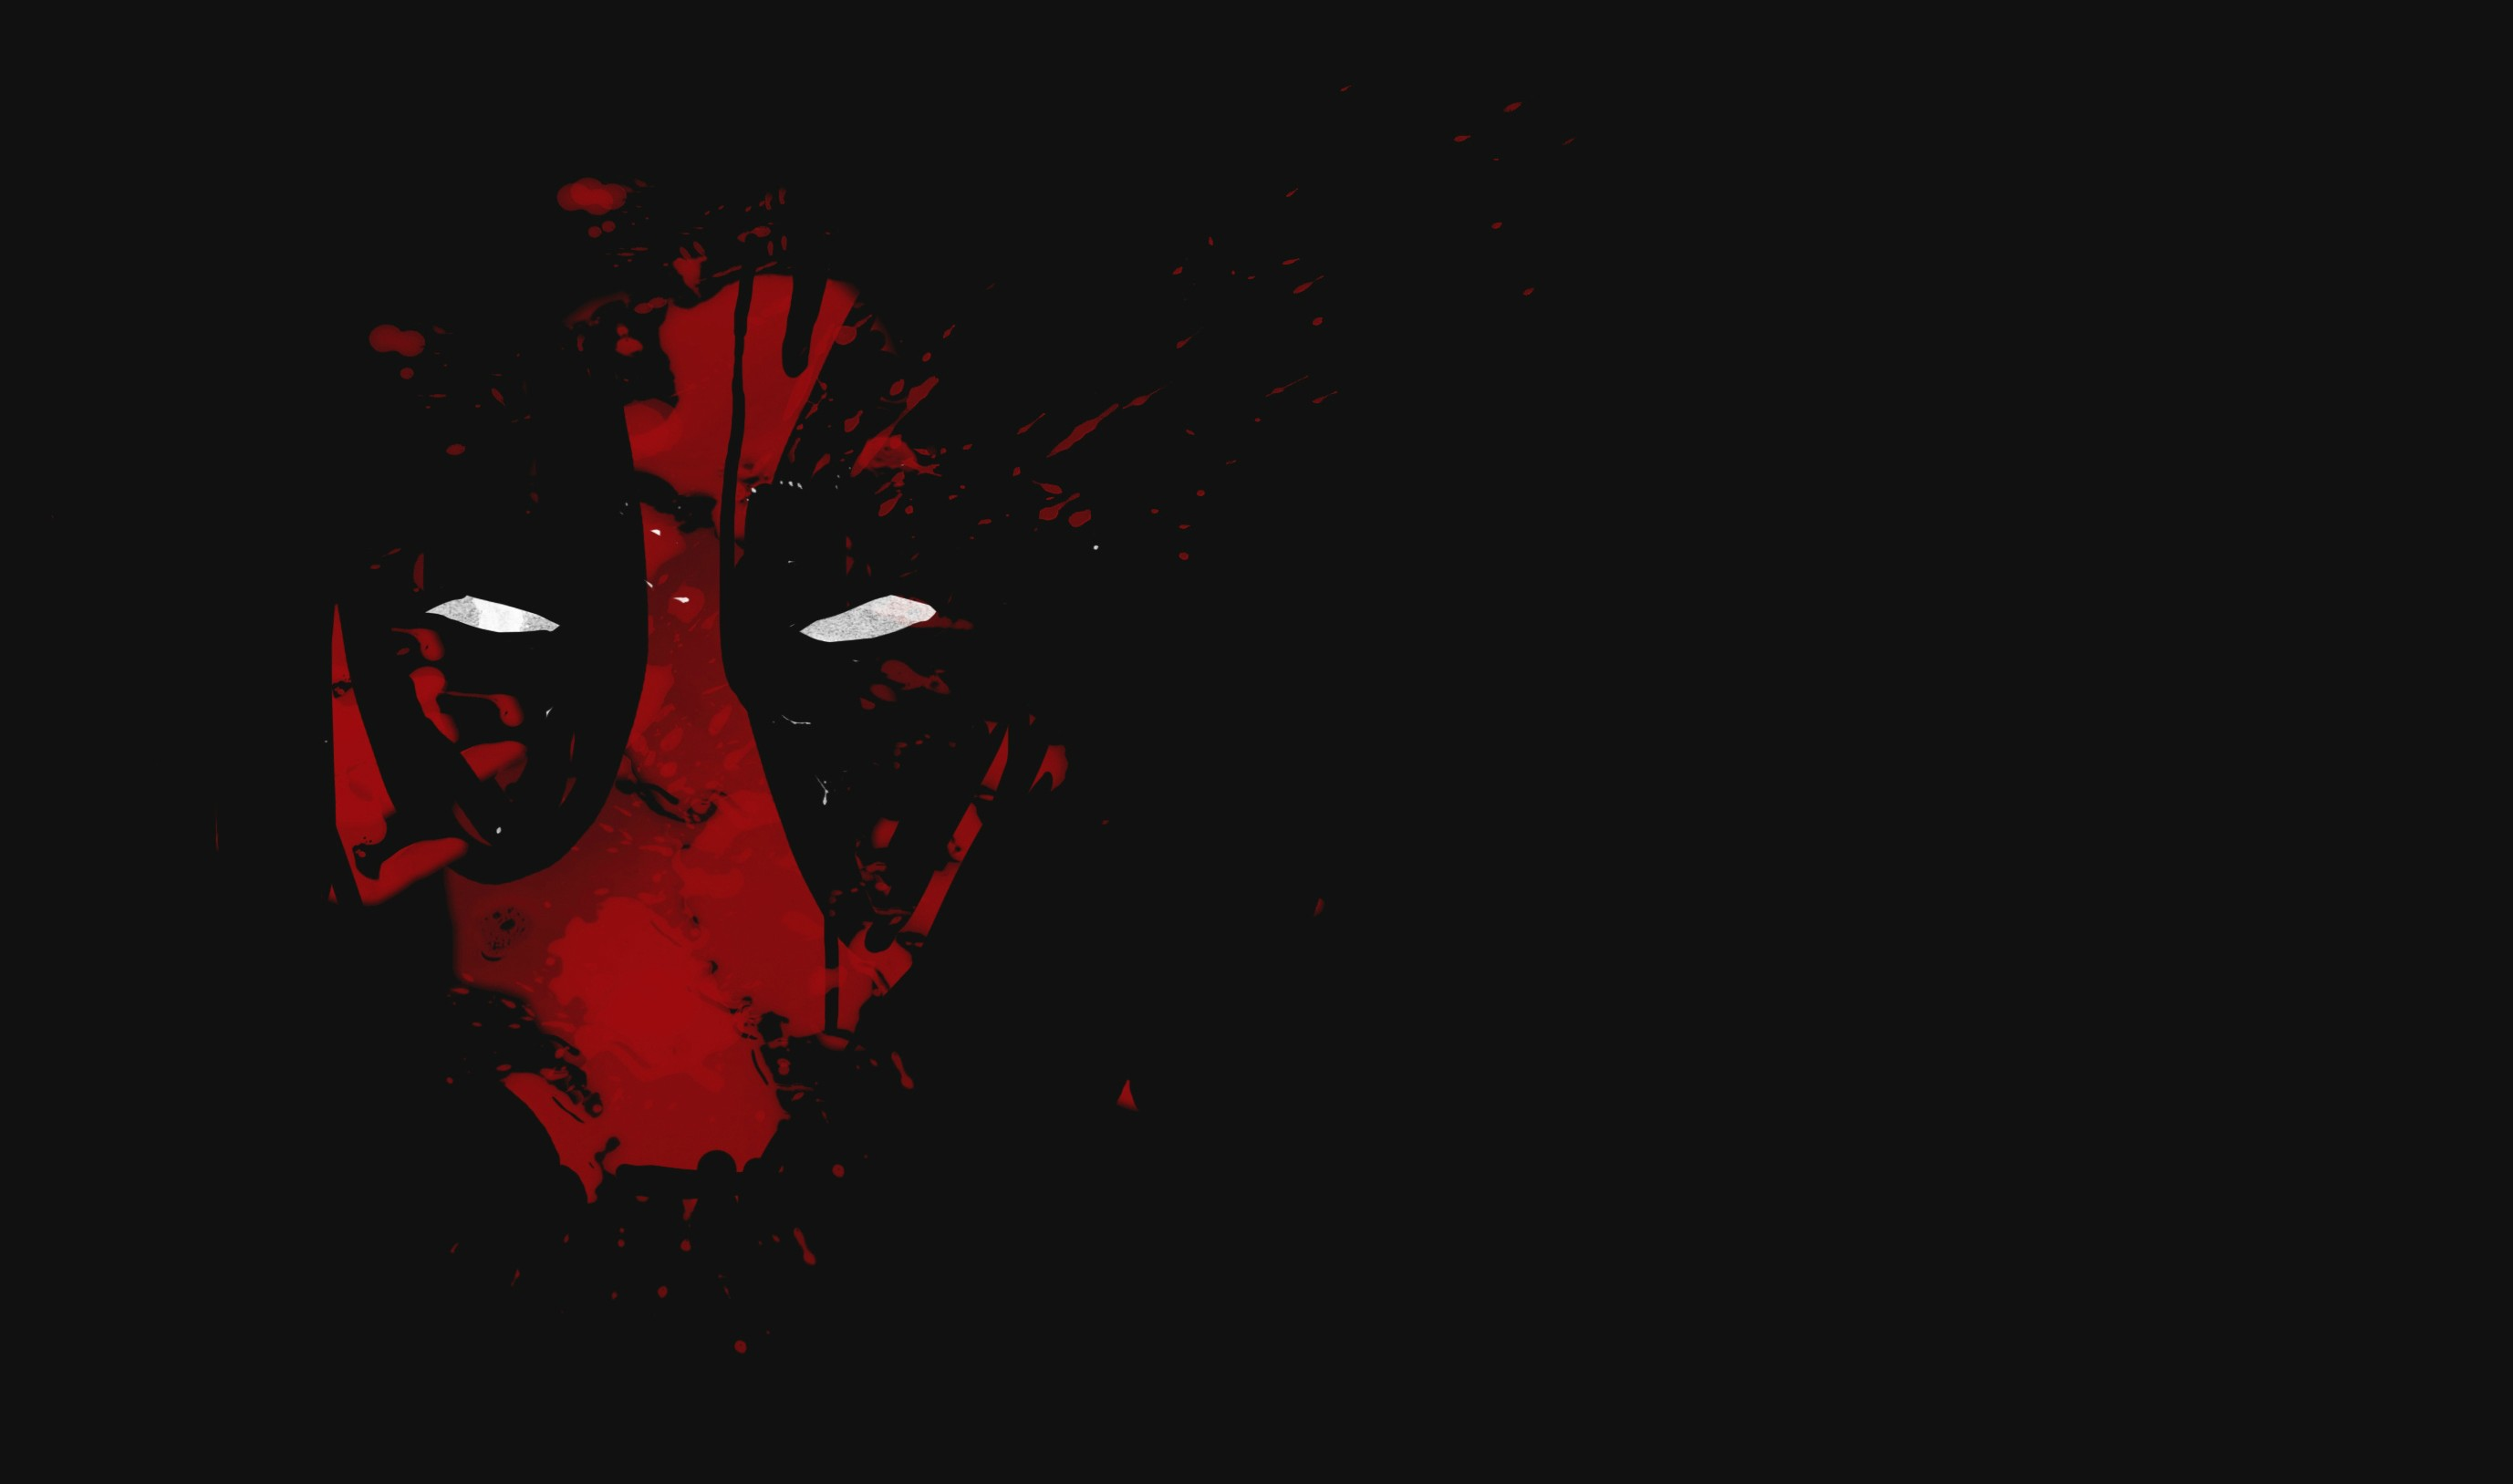 Deadpool Wallpapers Best Wallpapers 2755x1627